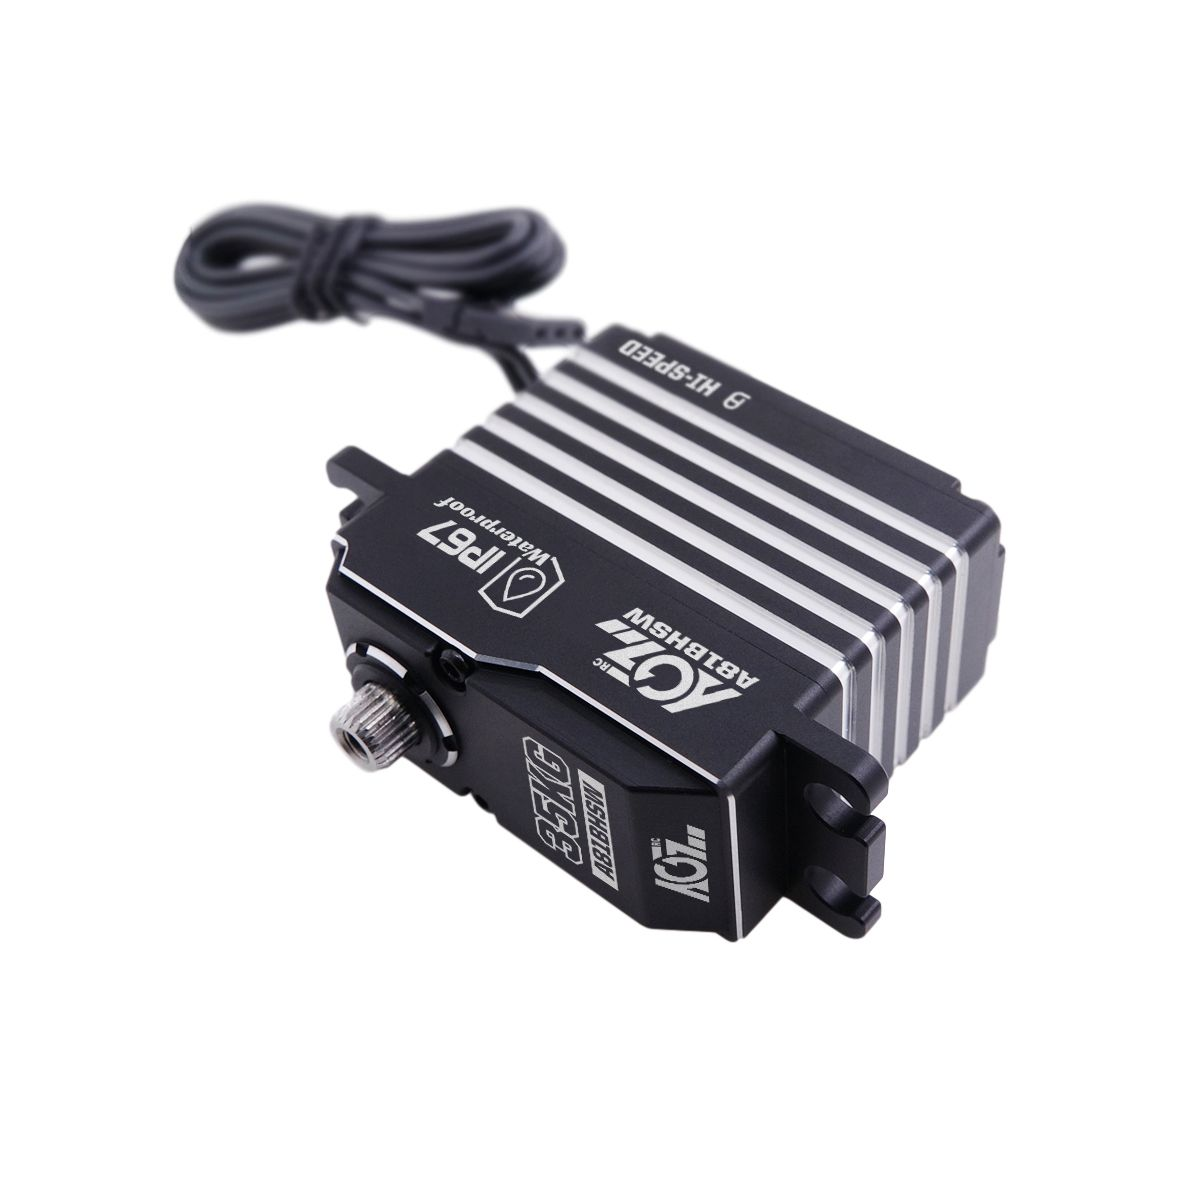 A81BHSW HV 0.075Sec 35KG Fast Cooling Reliable Gears High Premium Fully Waterproof Brushless Digital Standard Servo Motor